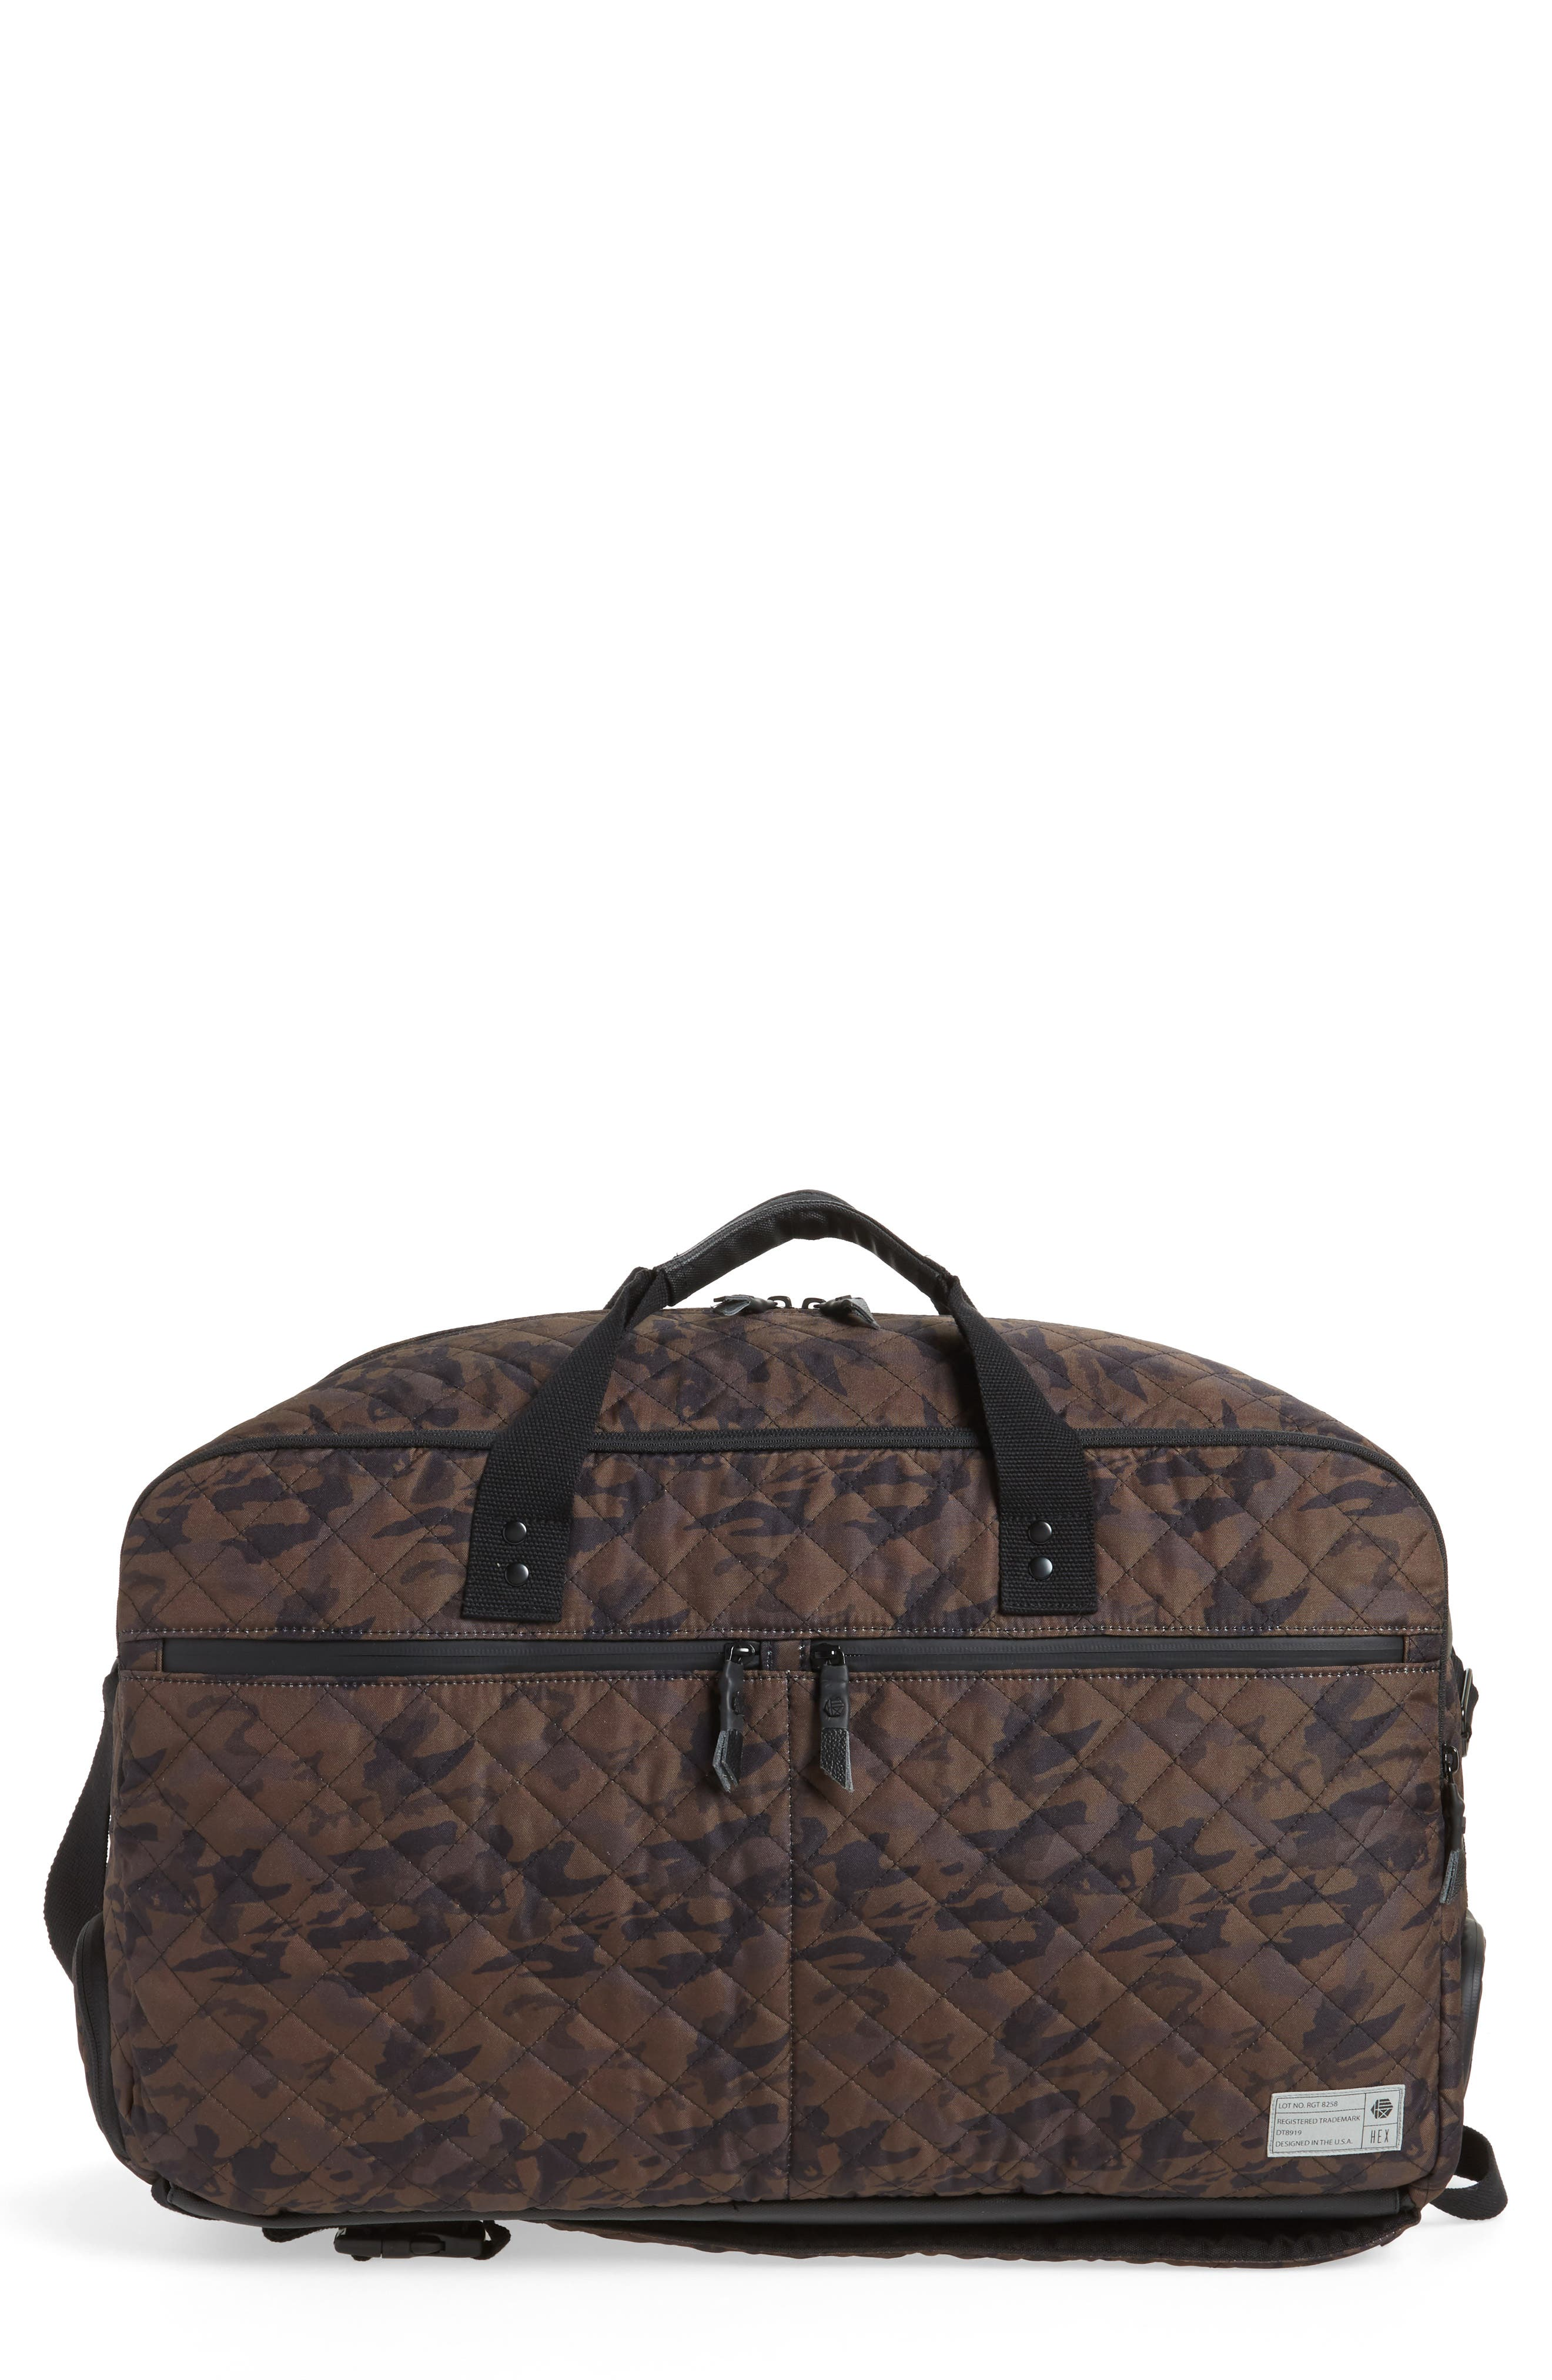 Convertible Duffel Bag,                             Main thumbnail 1, color,                             Quilted Camo